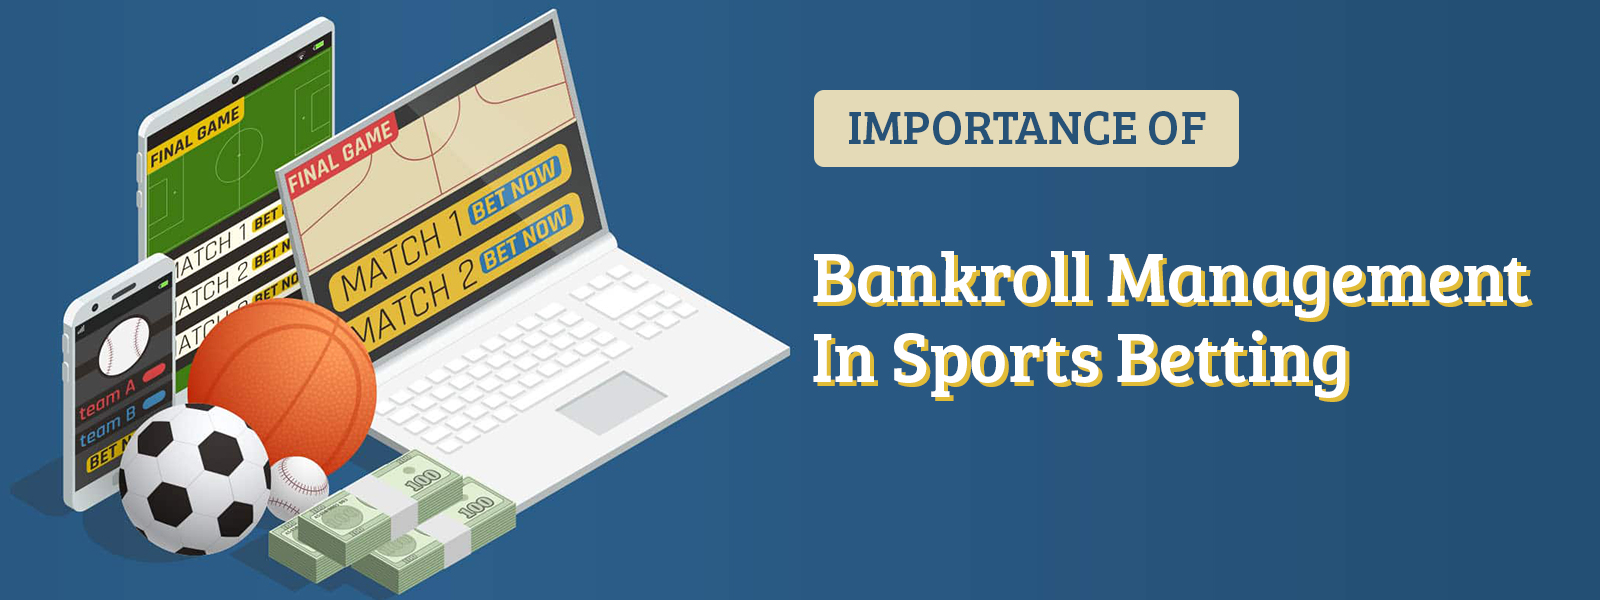 Importance Of Bankroll Management In Sports Betting